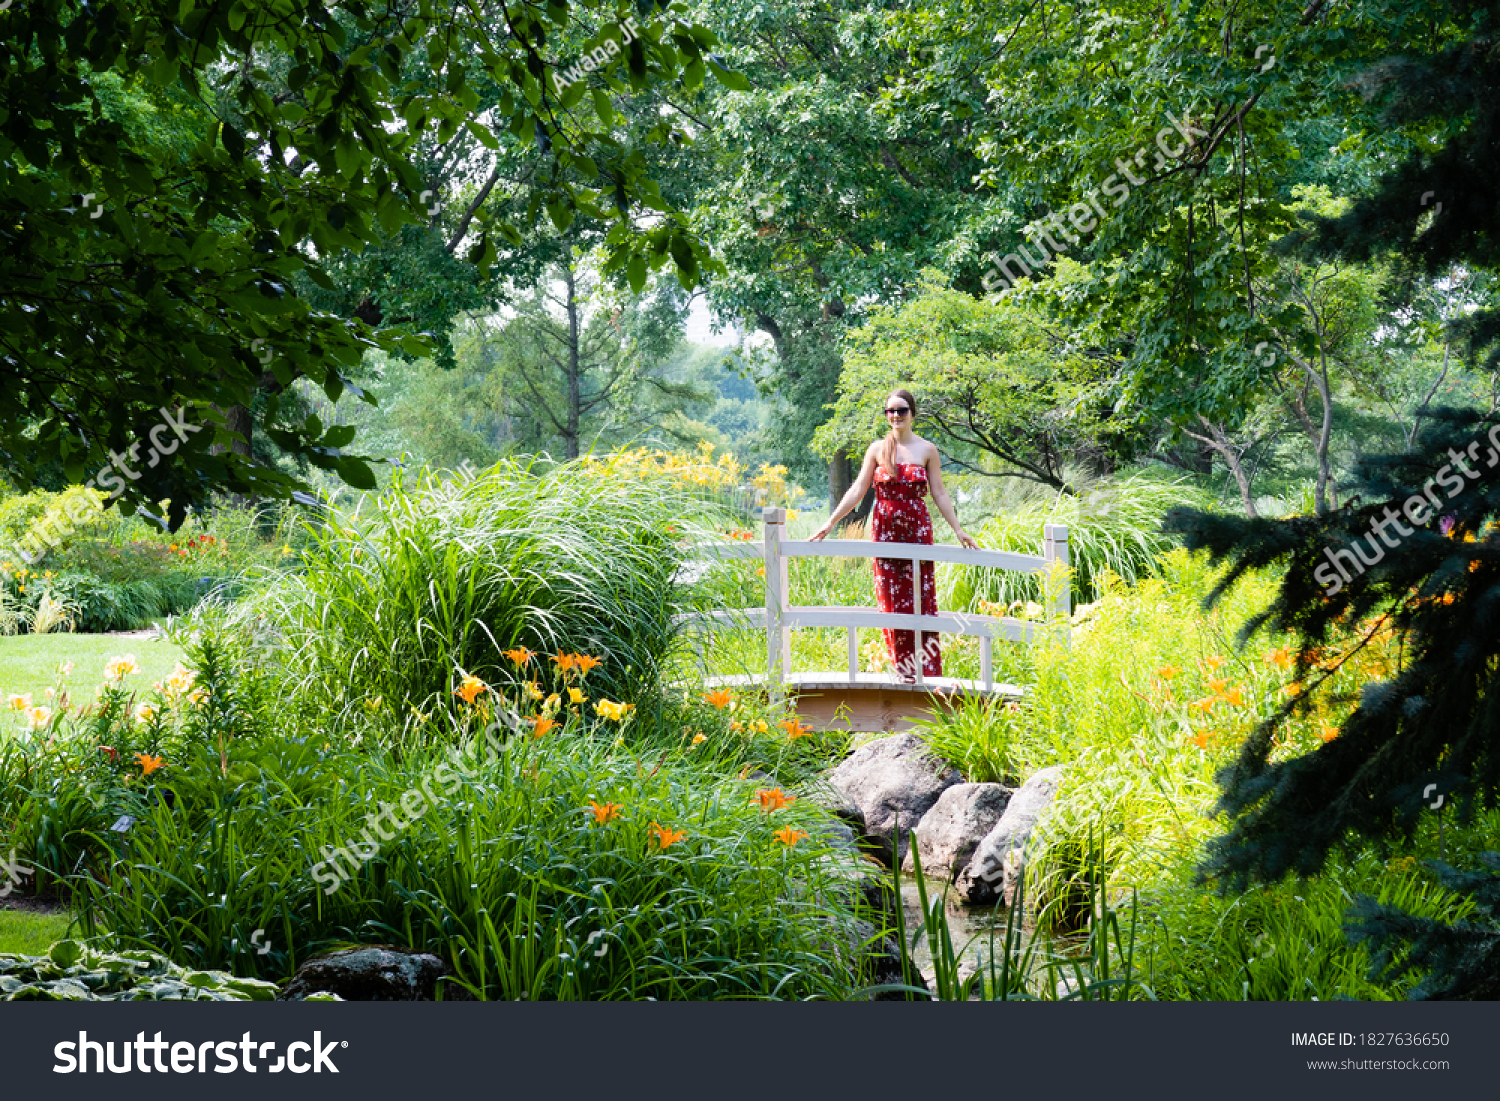 stock-photo-beautiful-view-of-a-young-wo